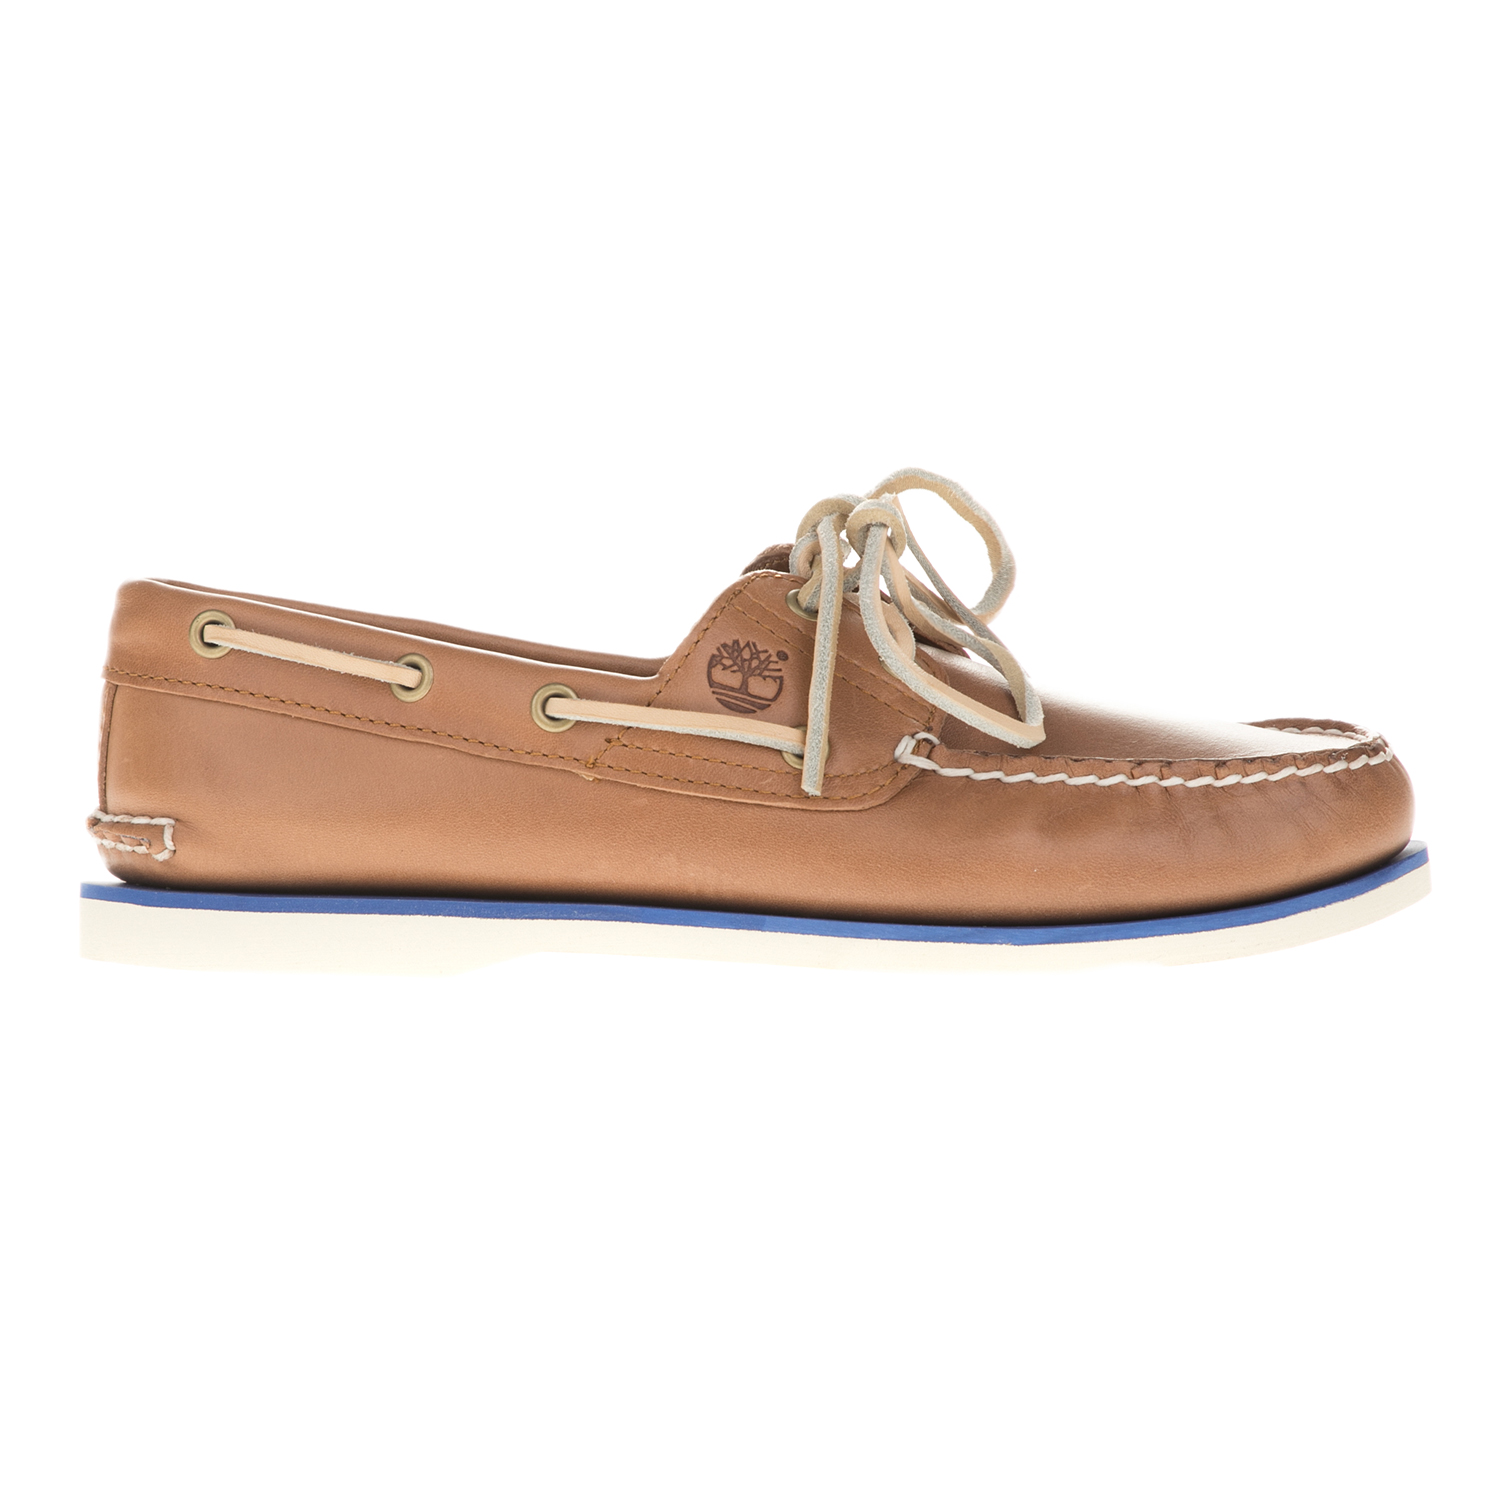 TIMBERLAND - Ανδρικά boat shoes TIMBERLAND A16M8 καφέ ανδρικά παπούτσια boat shoes